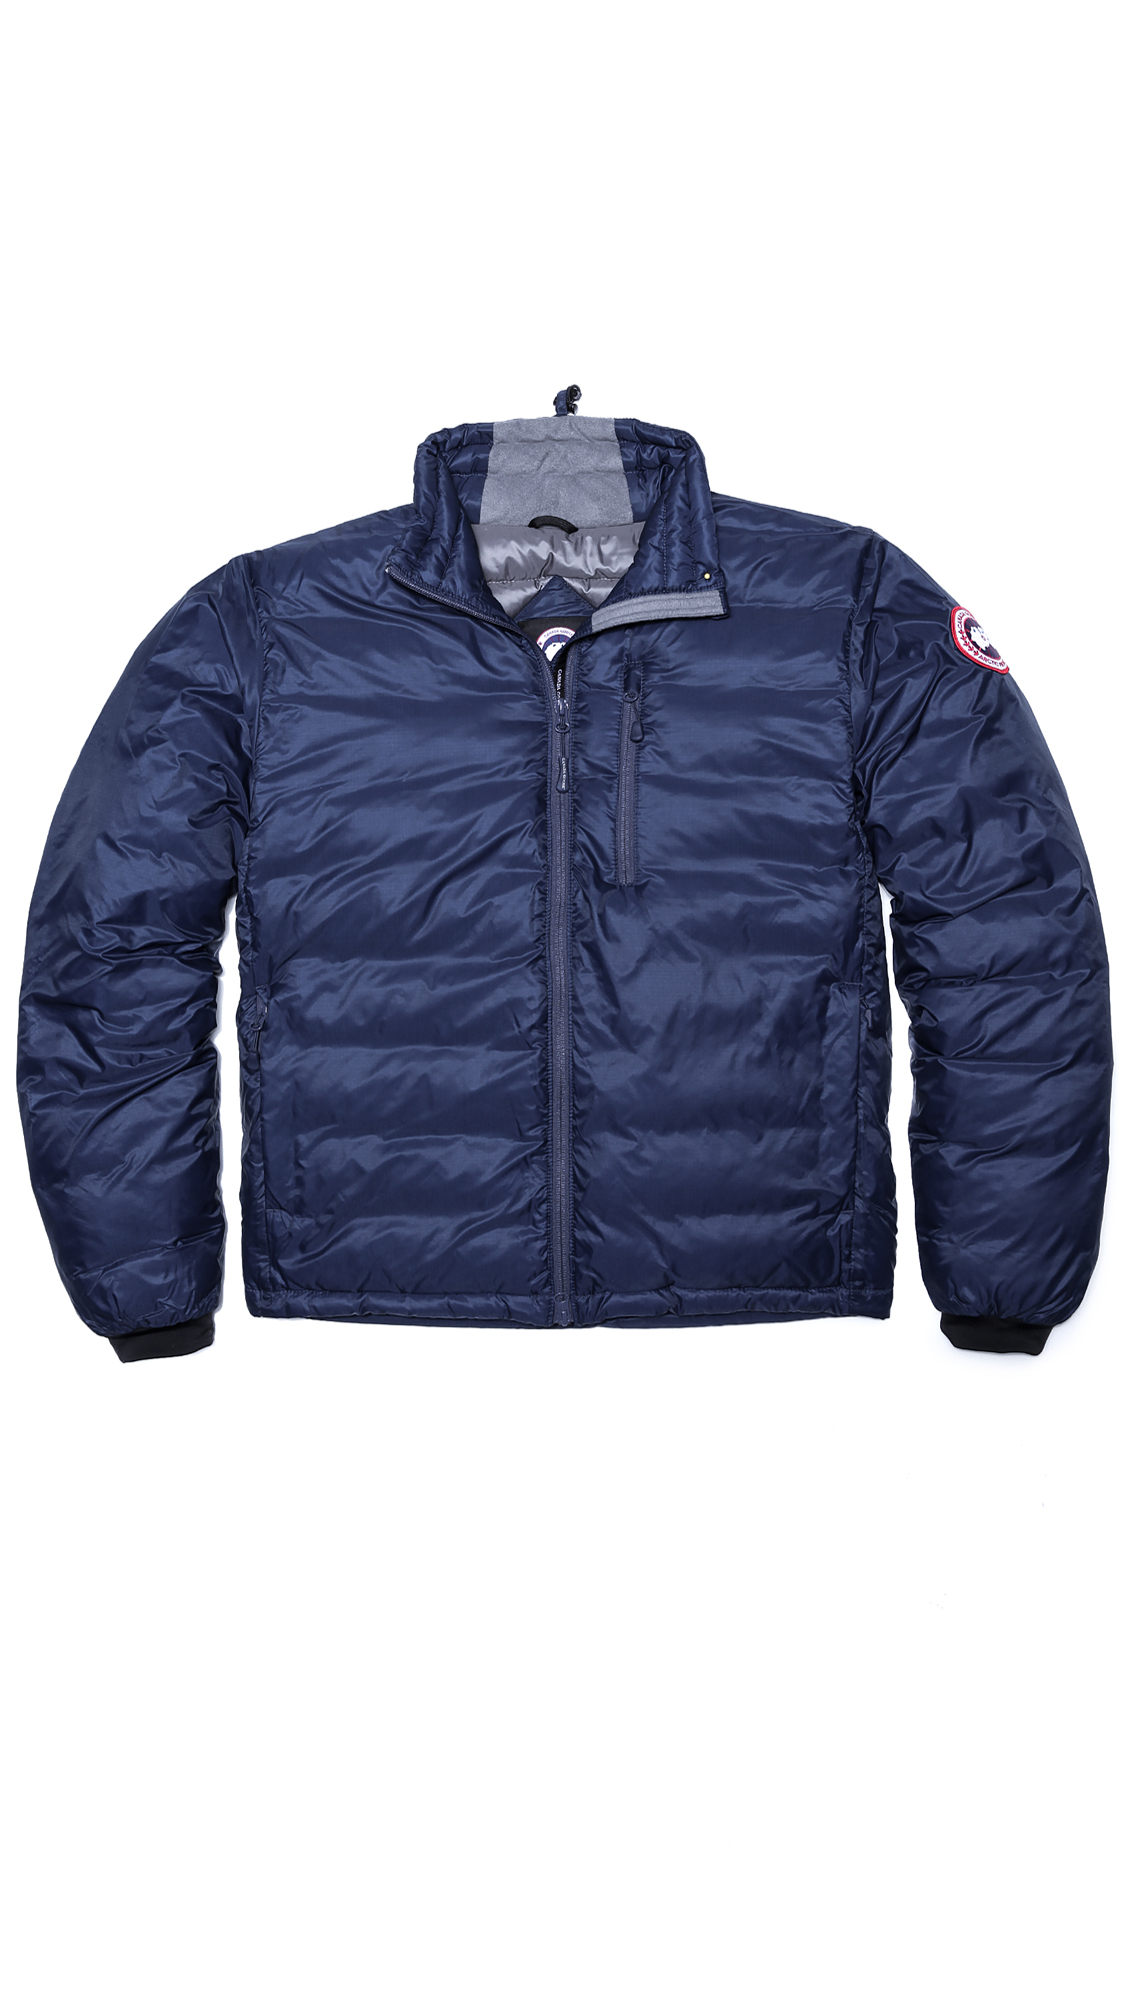 Down Jackets. We have a jacket for every need here at The House. We have the best selection of down jackets with over one hundred currently available.